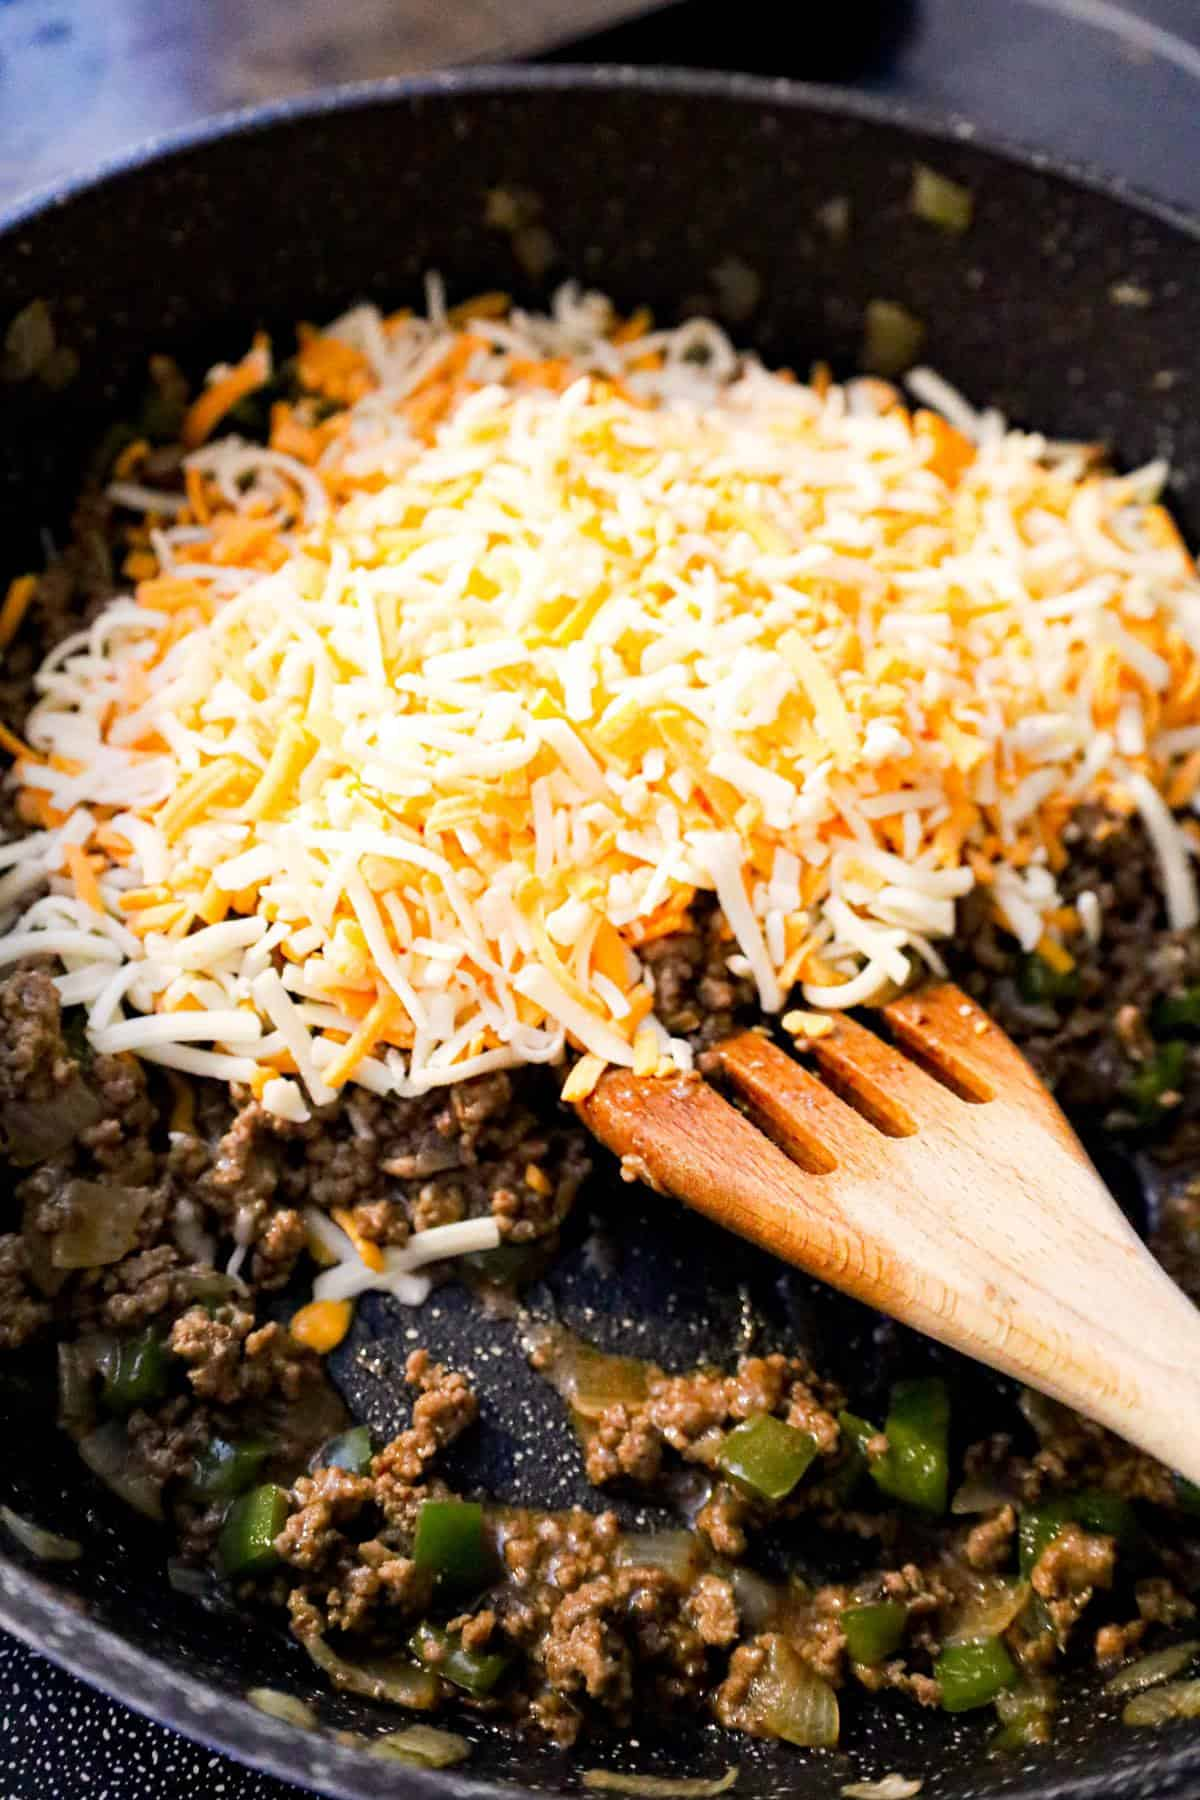 shredded mozzarella and cheddar cheese on top of ground beef mixture in a saute pan